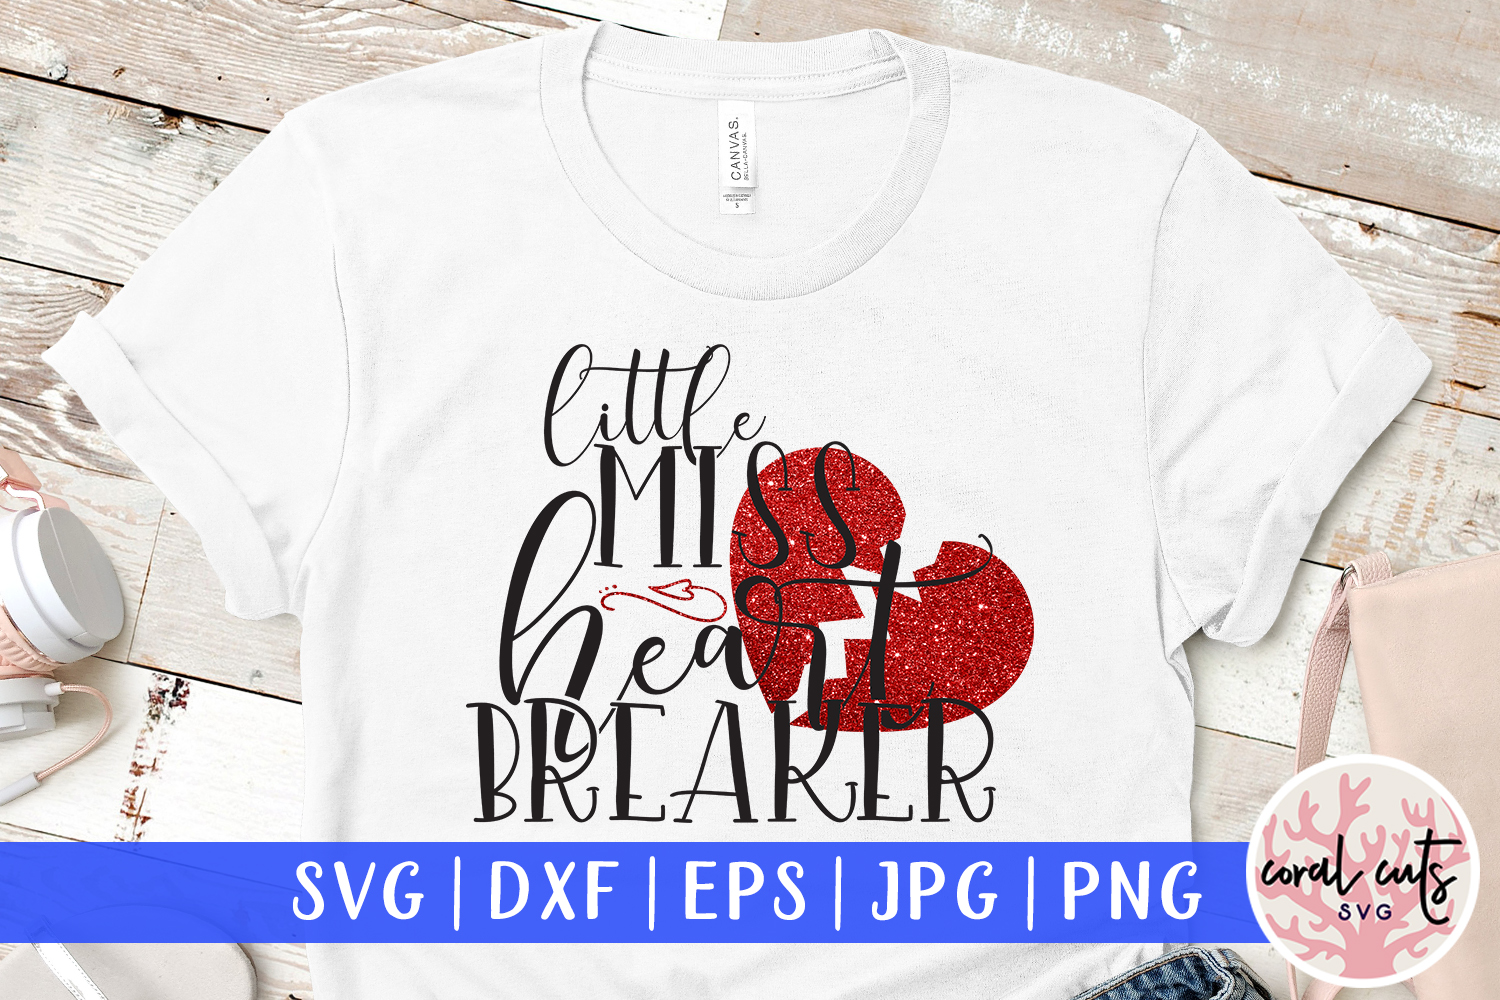 Download Free Little Miss Heart Breaker Graphic By Coralcutssvg Creative Fabrica for Cricut Explore, Silhouette and other cutting machines.